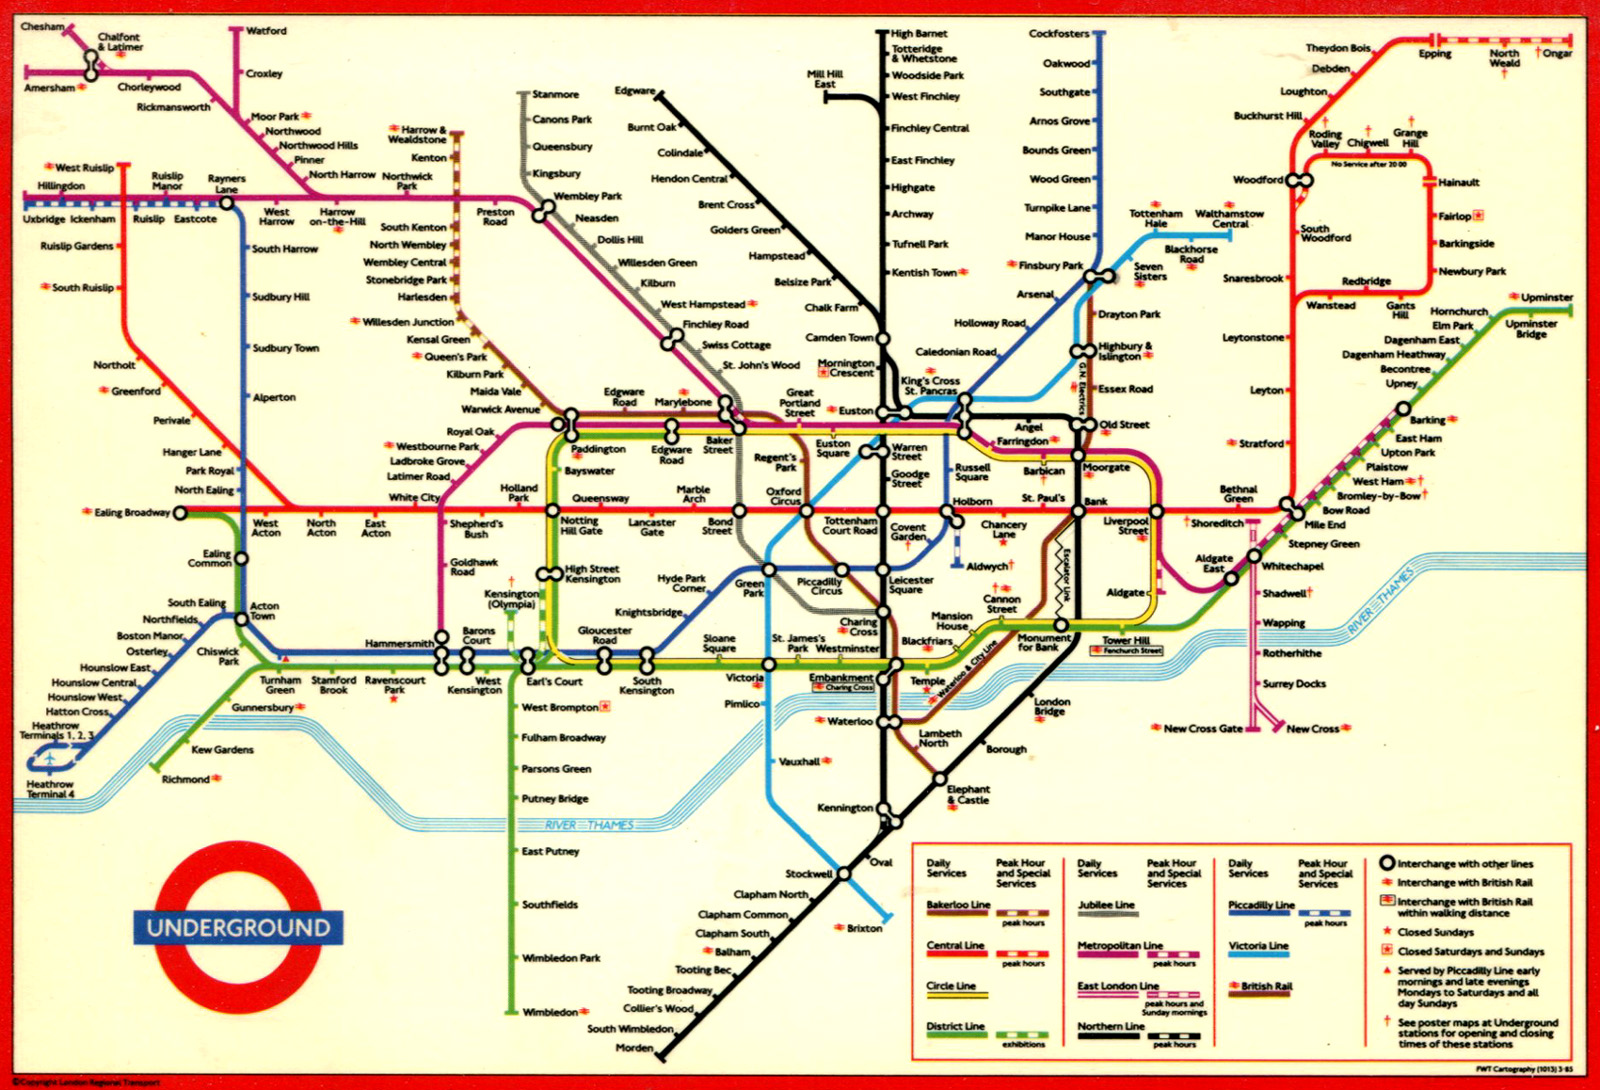 London England Transit Map.A Side Effect Of London S Bakerloo Tube Extension Easier Breathing